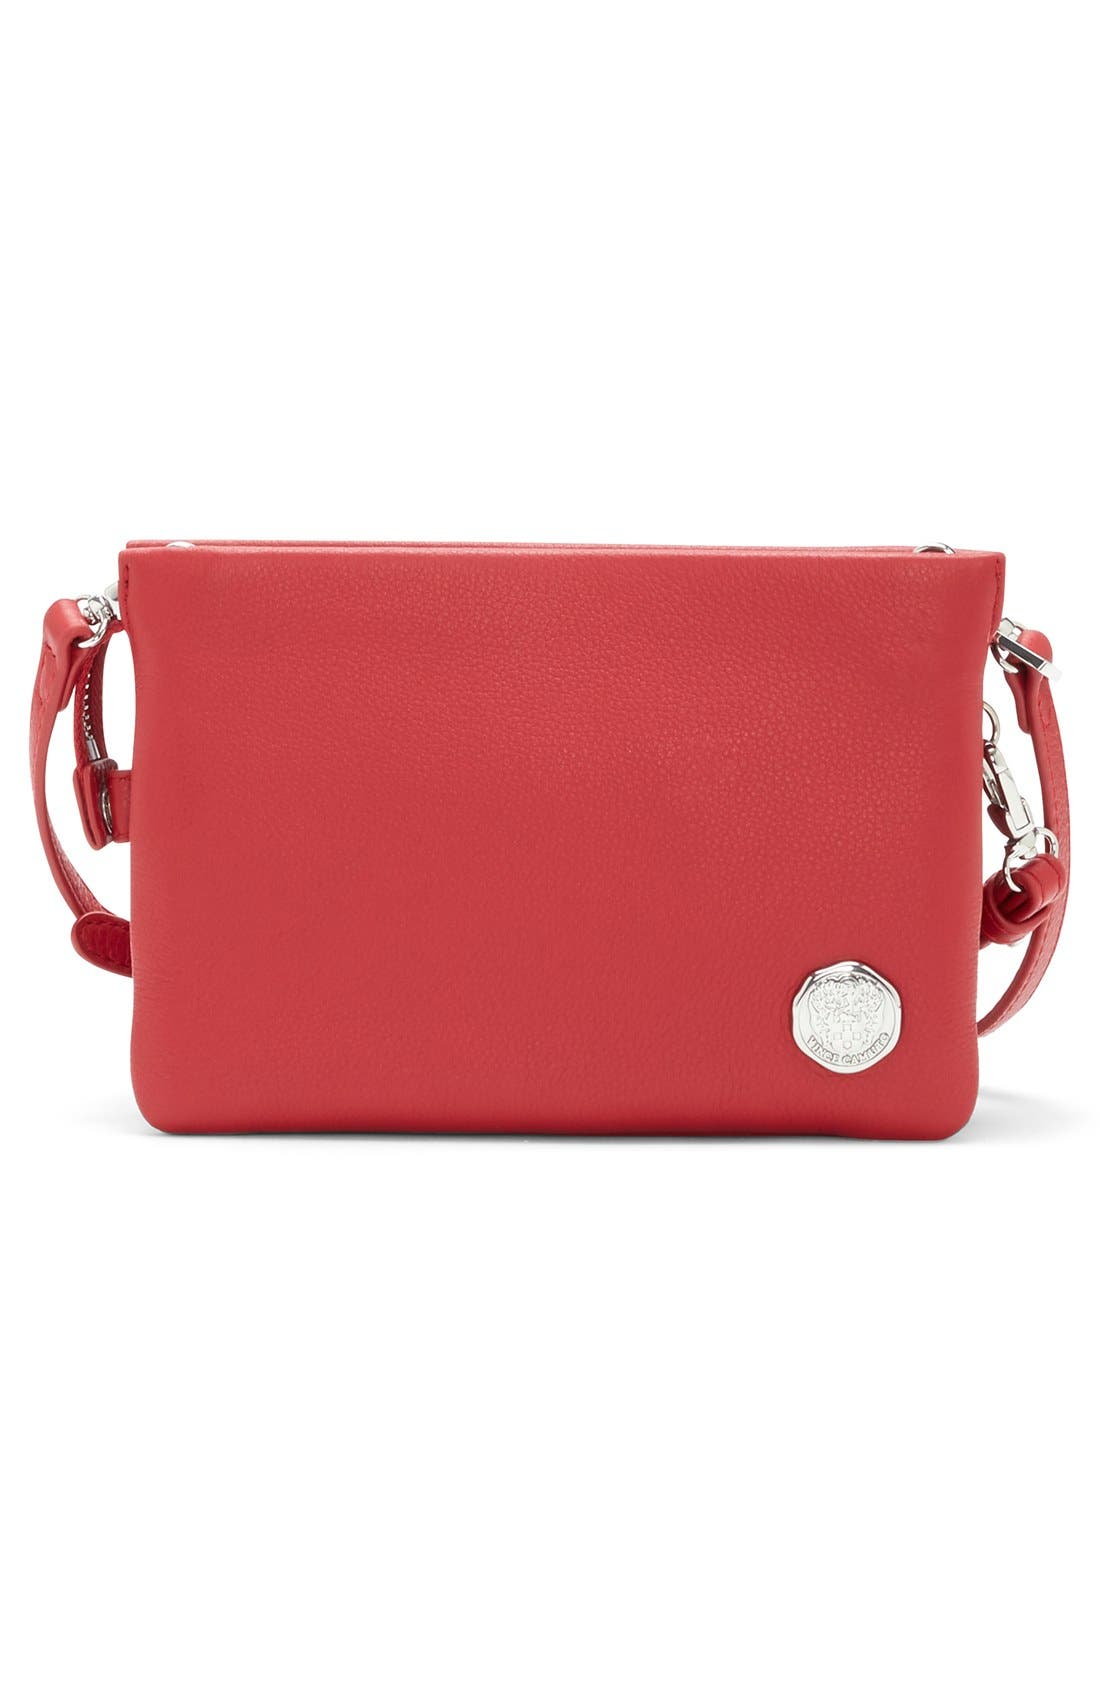 'Cami' Leather Crossbody Bag,                             Alternate thumbnail 65, color,